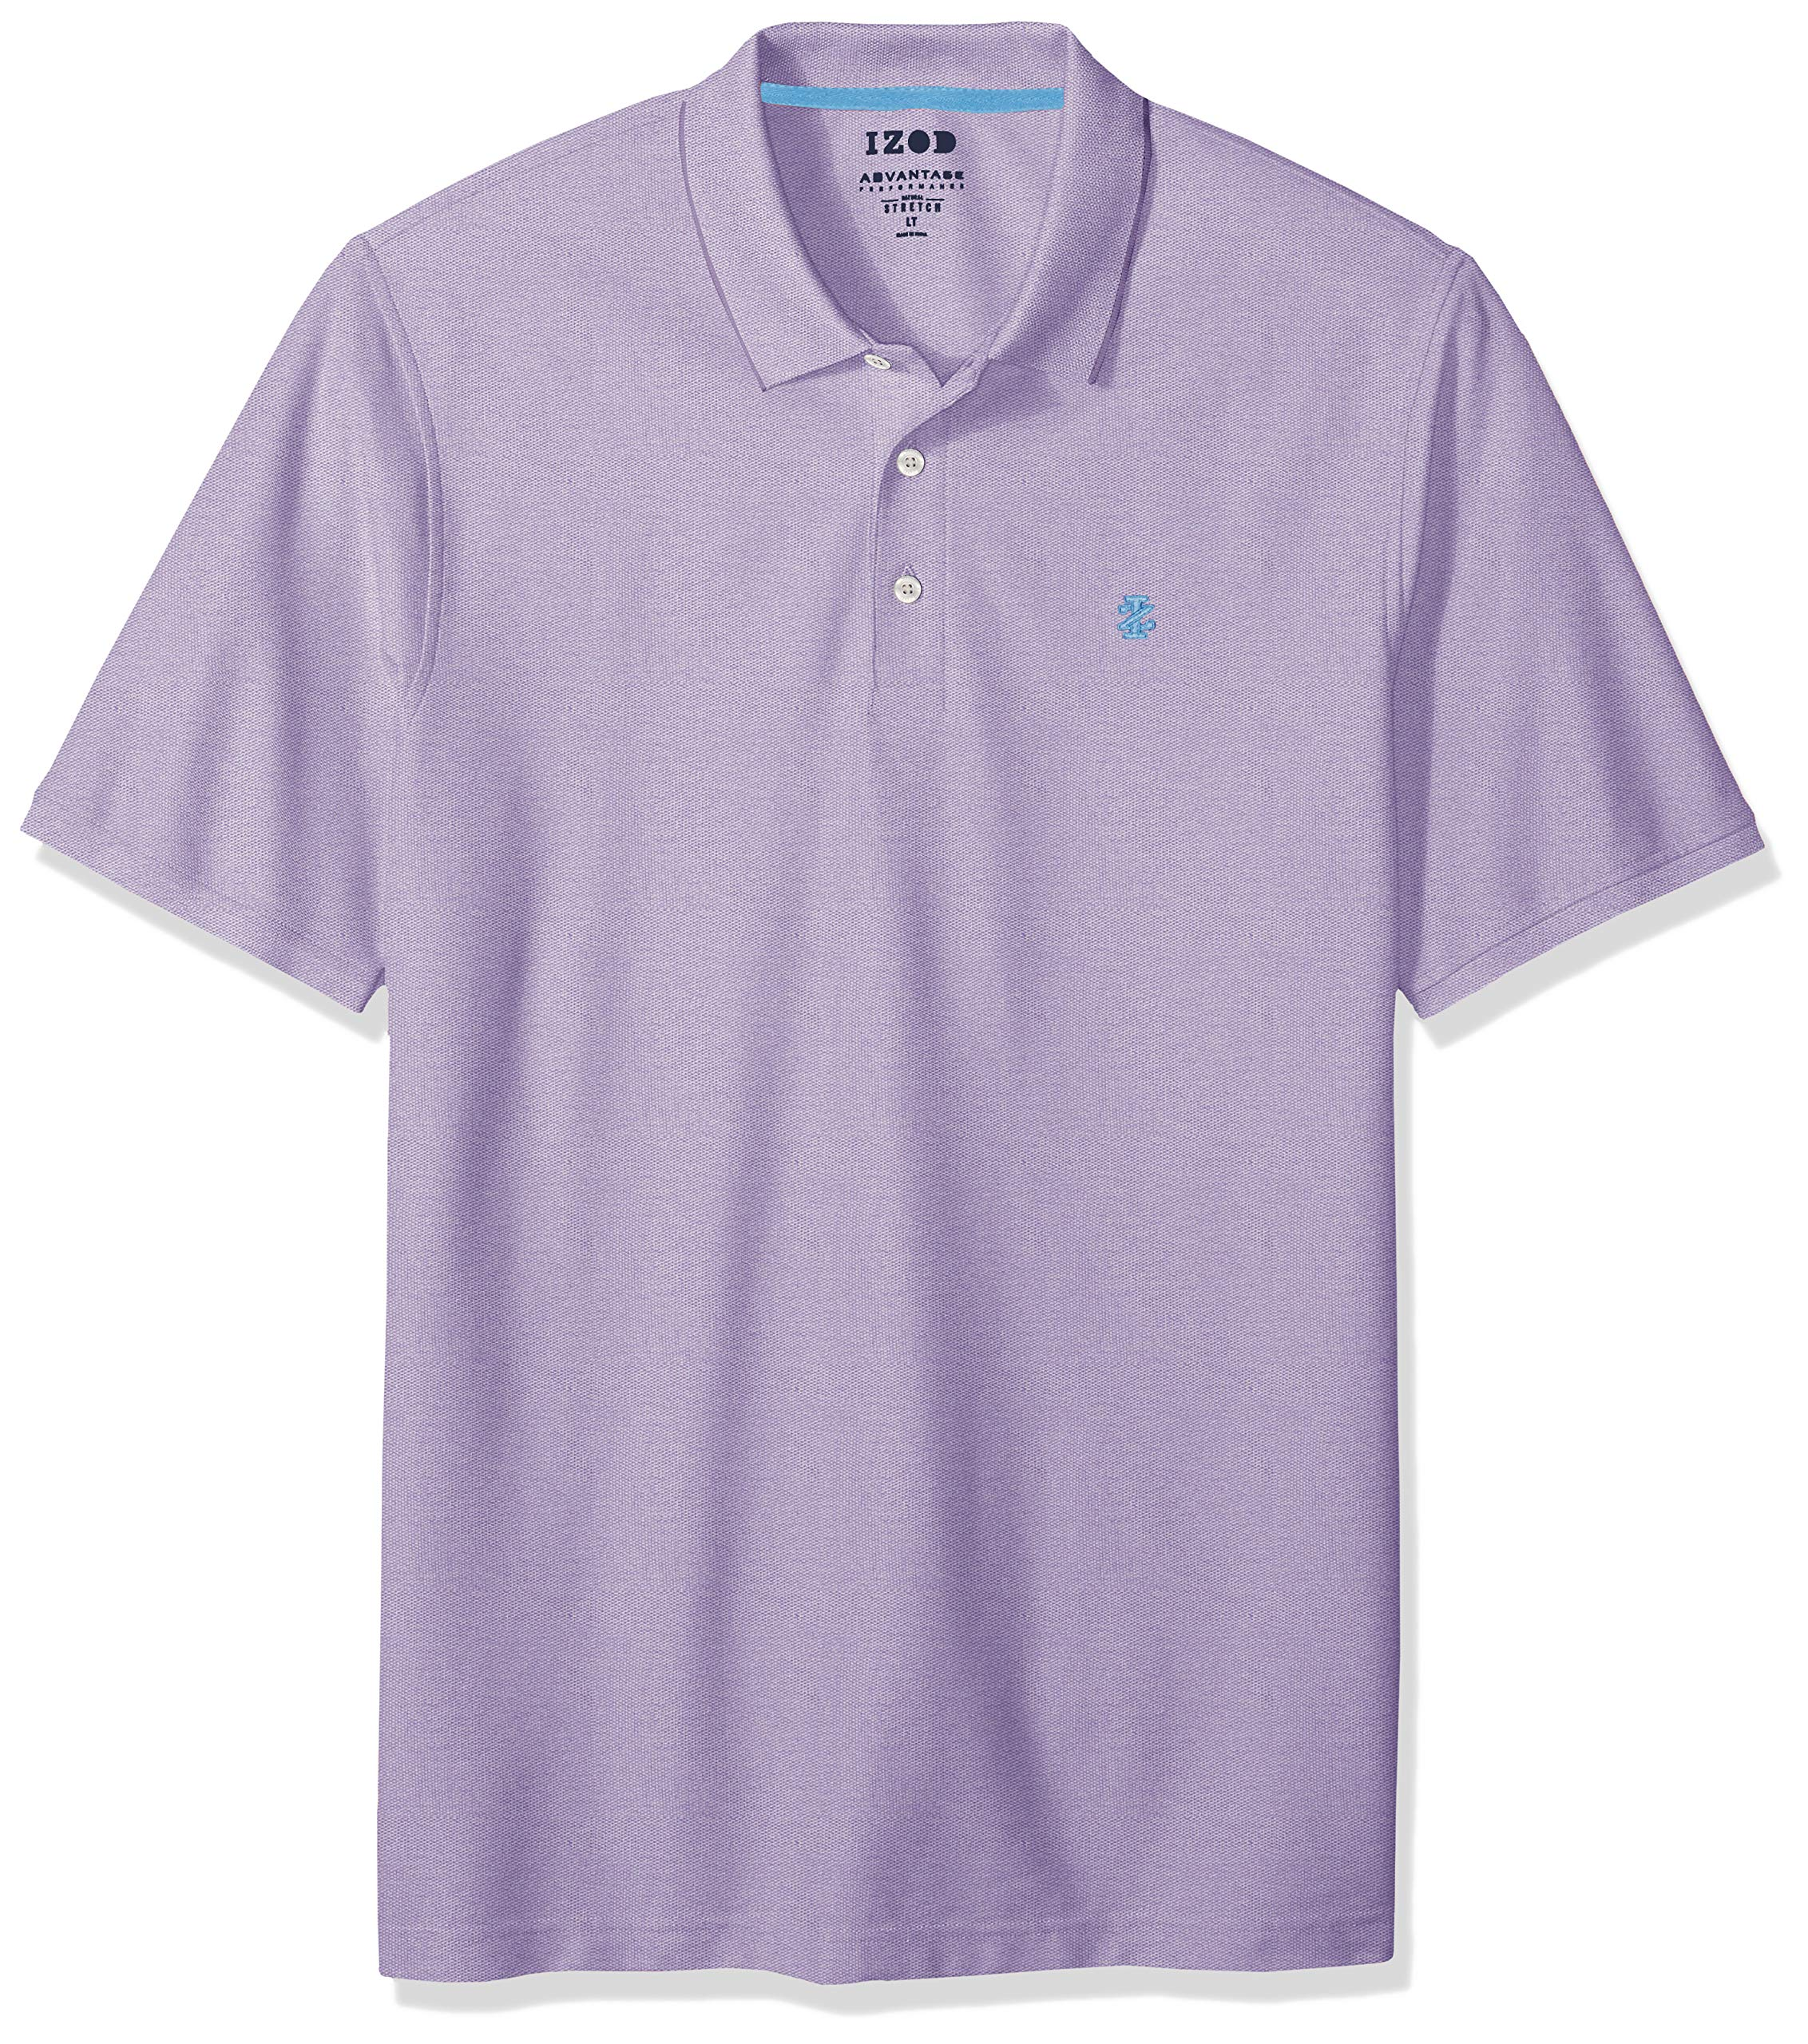 Fashion Shopping IZOD Men's Big and Tall Advantage Performance Short Sleeve